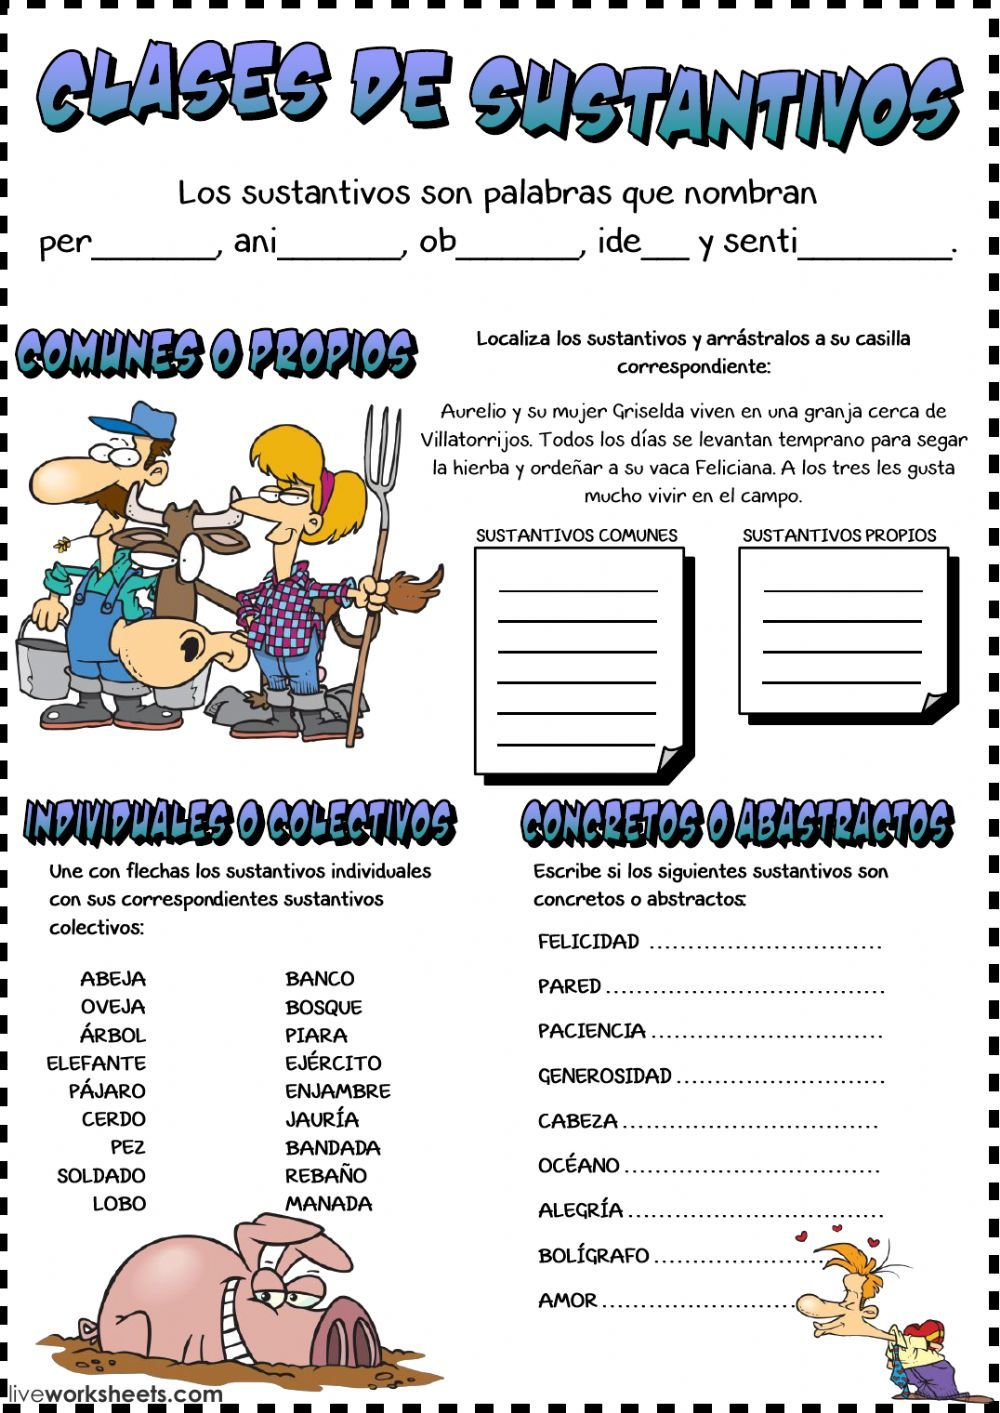 Clases De Sustantivos Interactive And Downloadable Worksheet You Can Do The Exercises Online Or Download T Teaching Prep Kids Math Worksheets Teaching Spanish